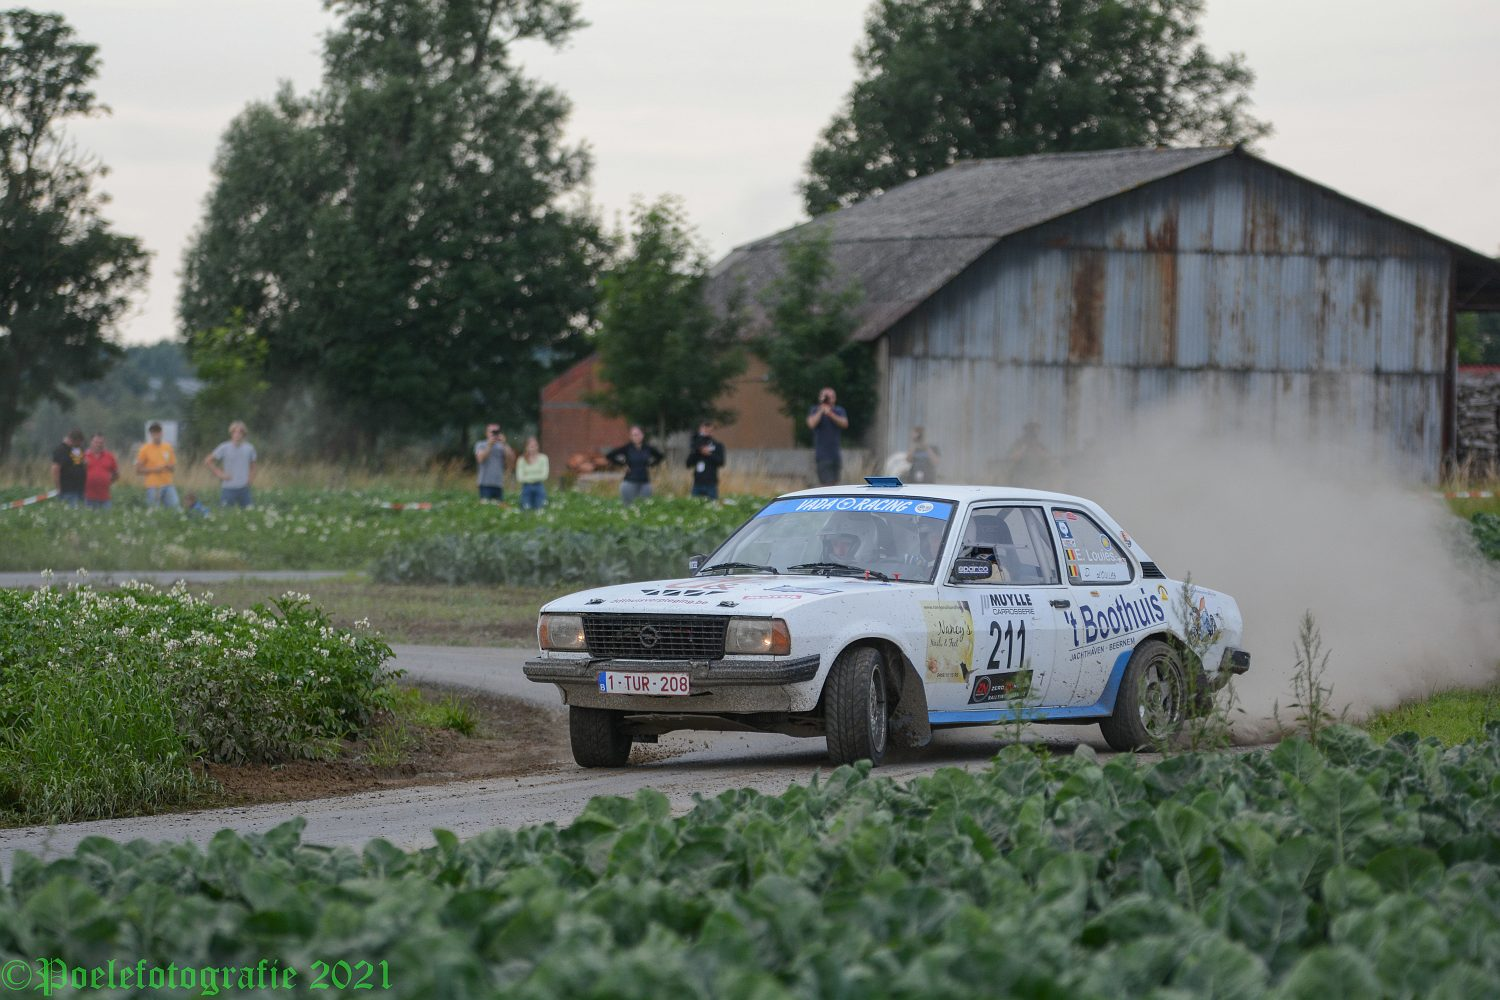 TBR Rallysprint door Geert Evenepoel